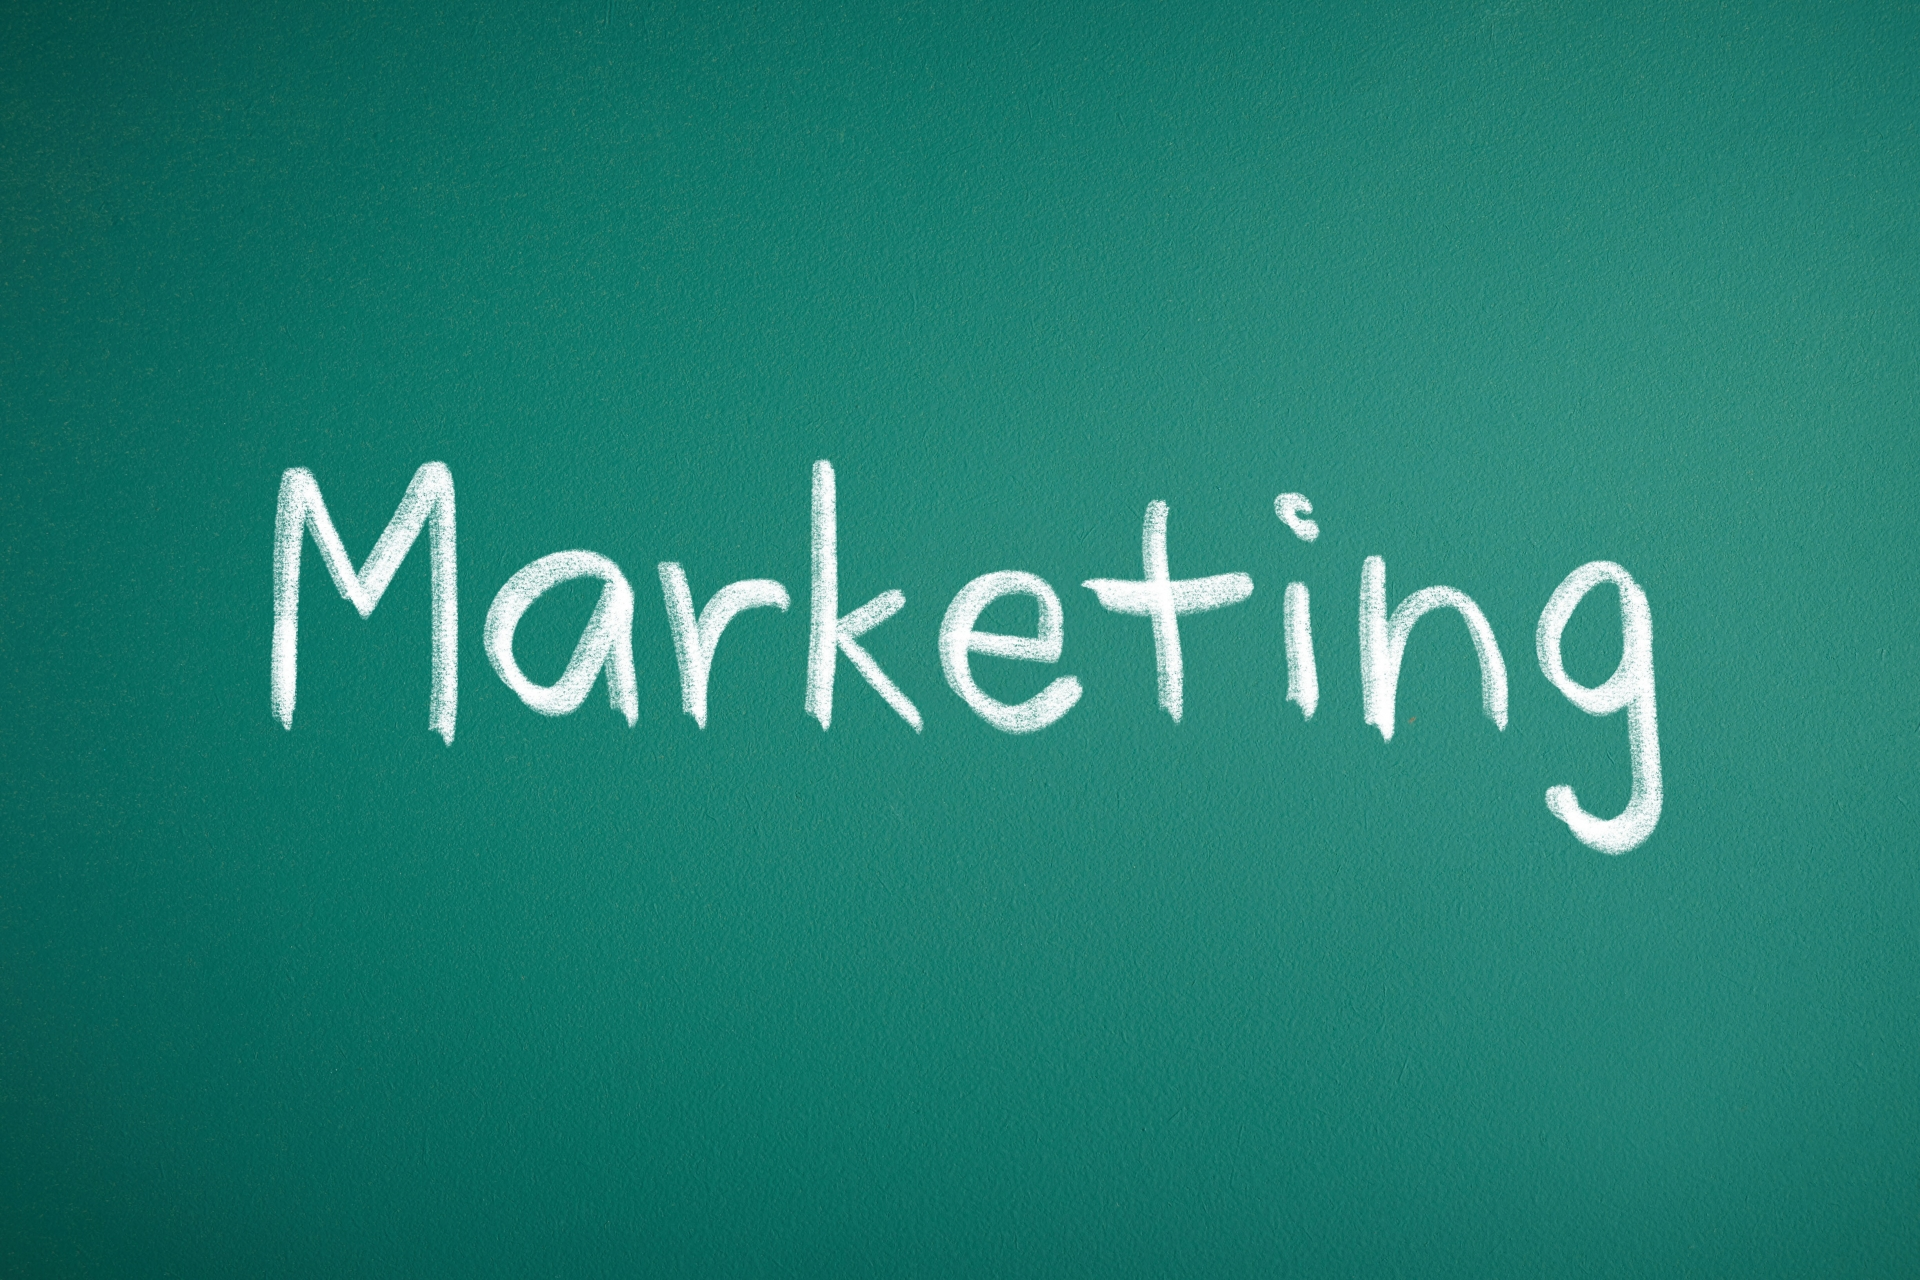 chalkboard-marketing-1